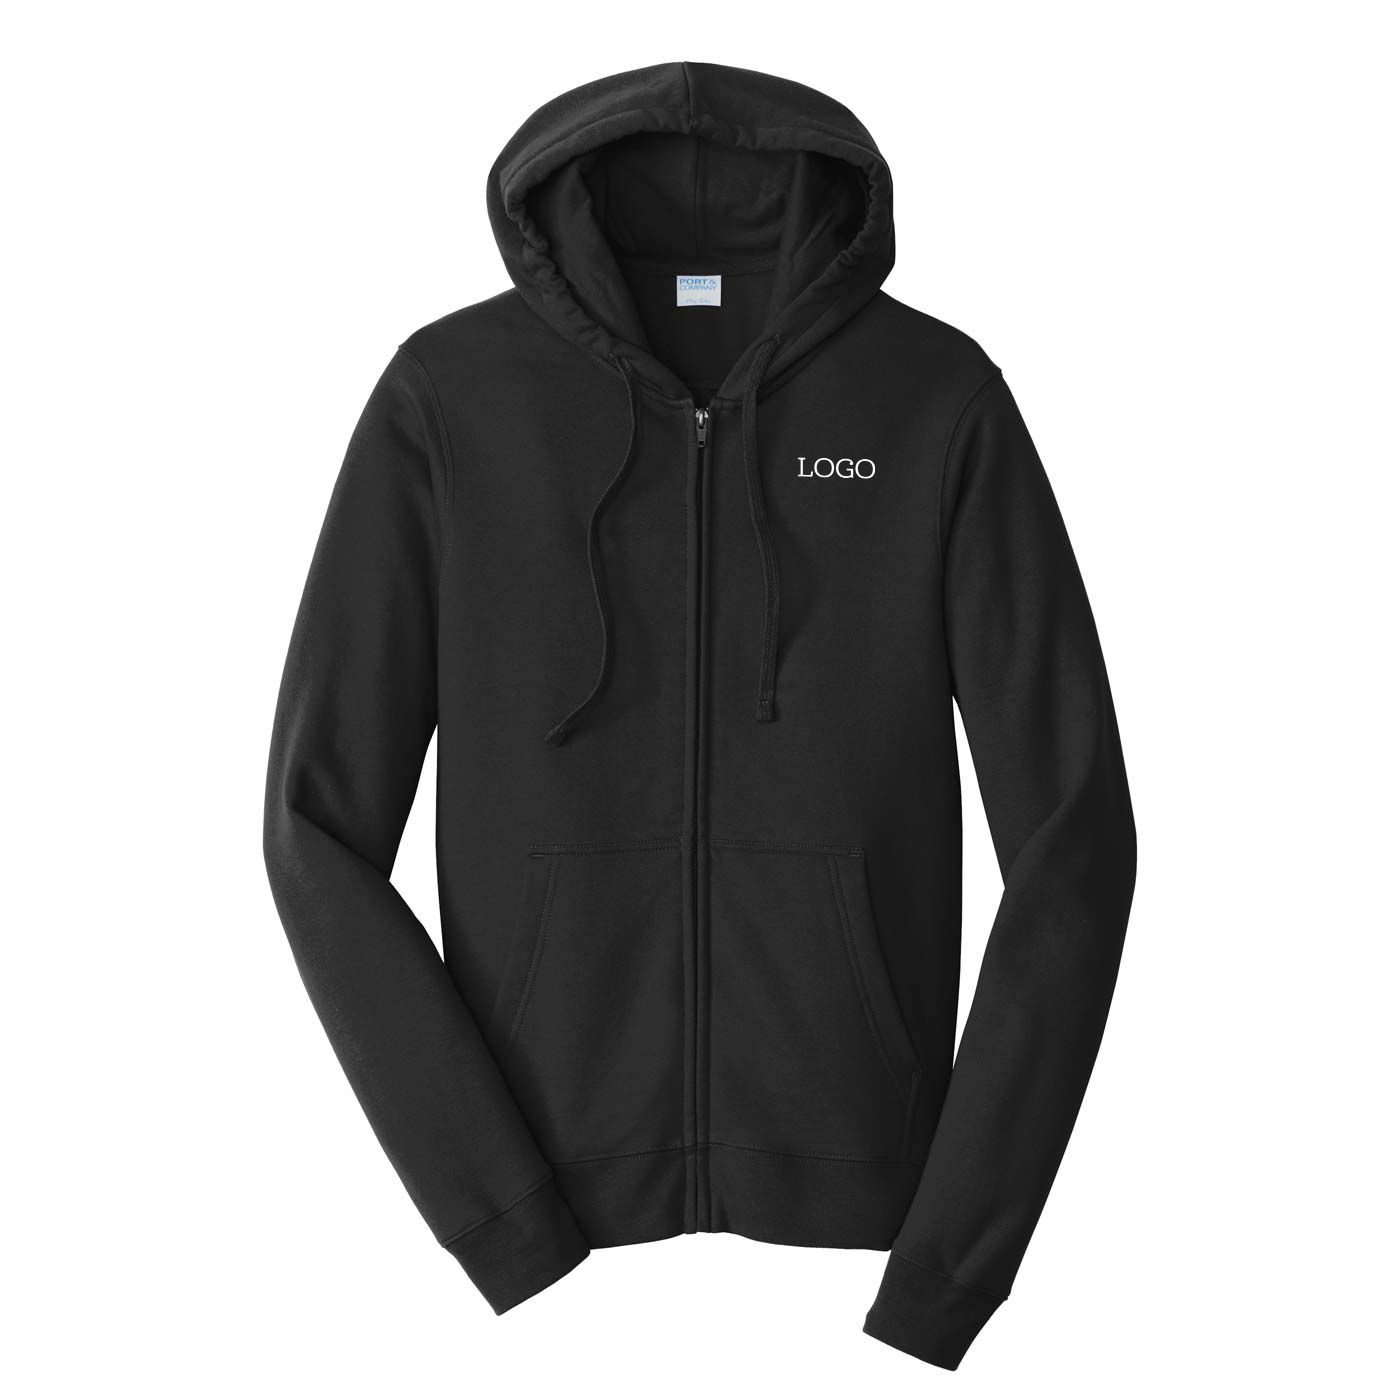 250748 bete fleece full zip one color one location imprint